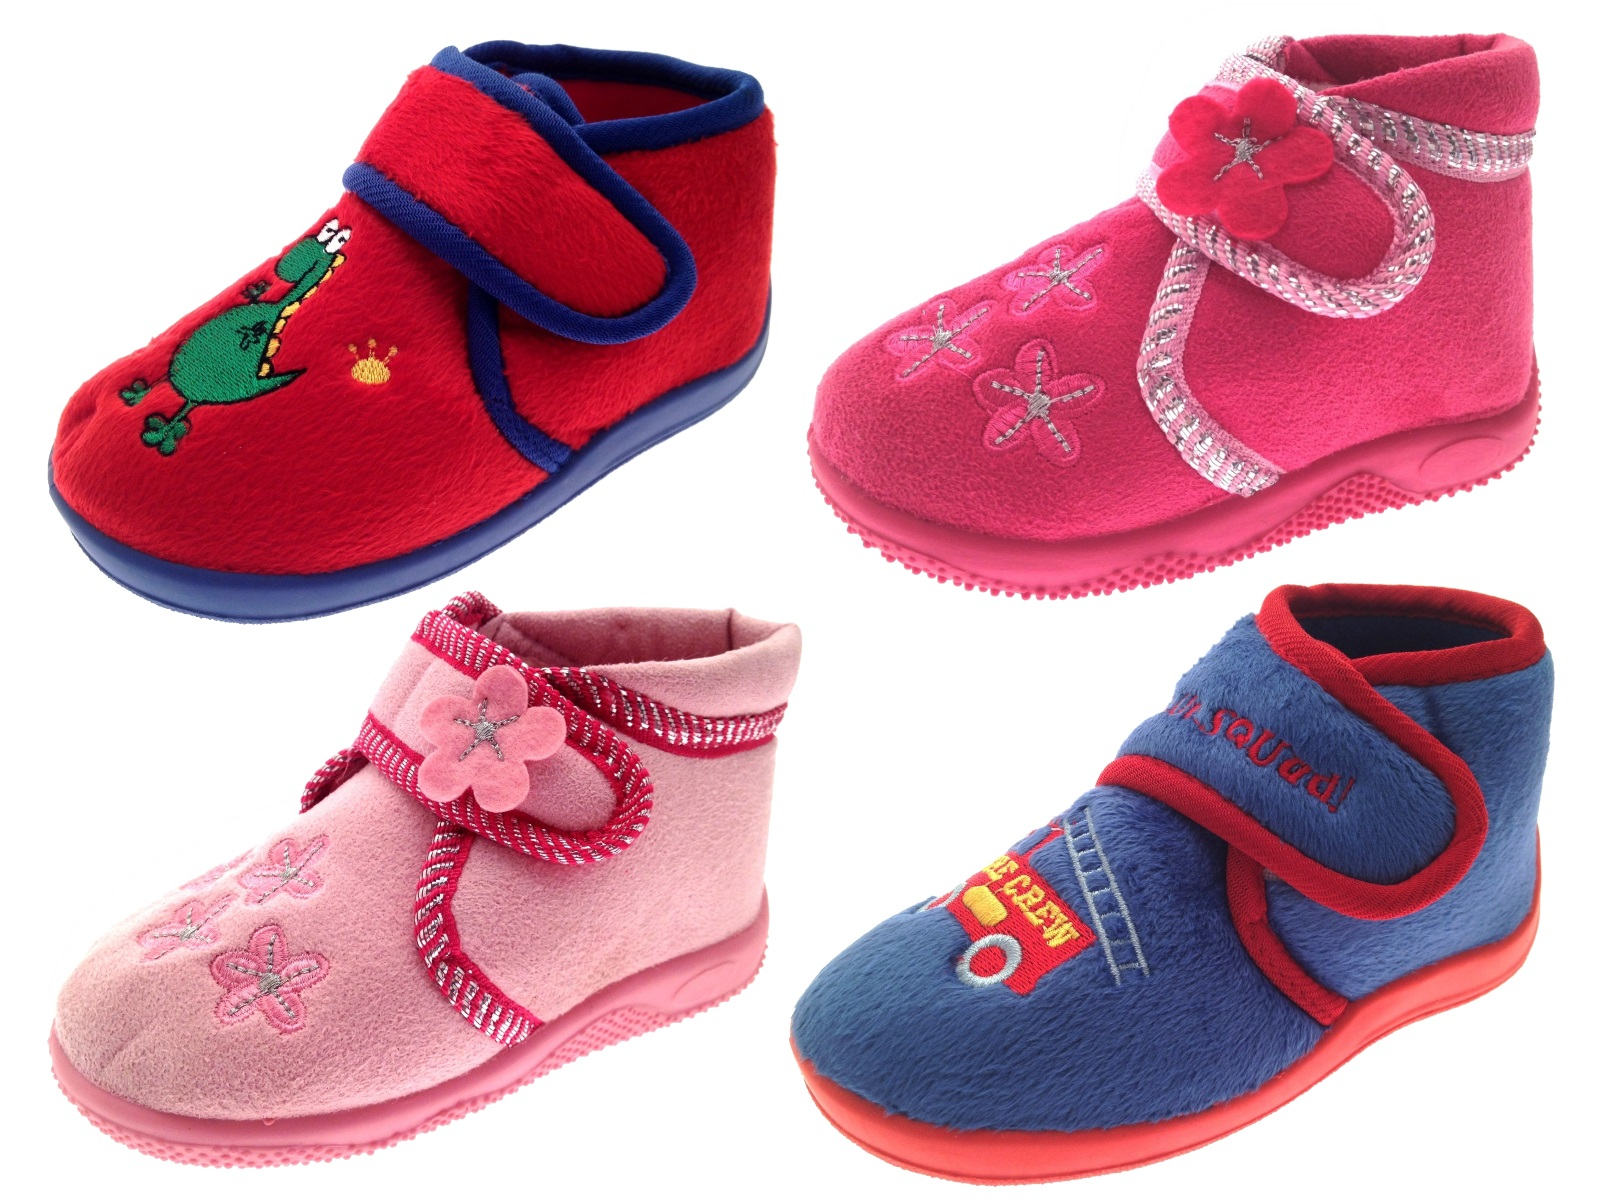 Kids Boys Girls Toddlers Slippers Boots Booties Childrens